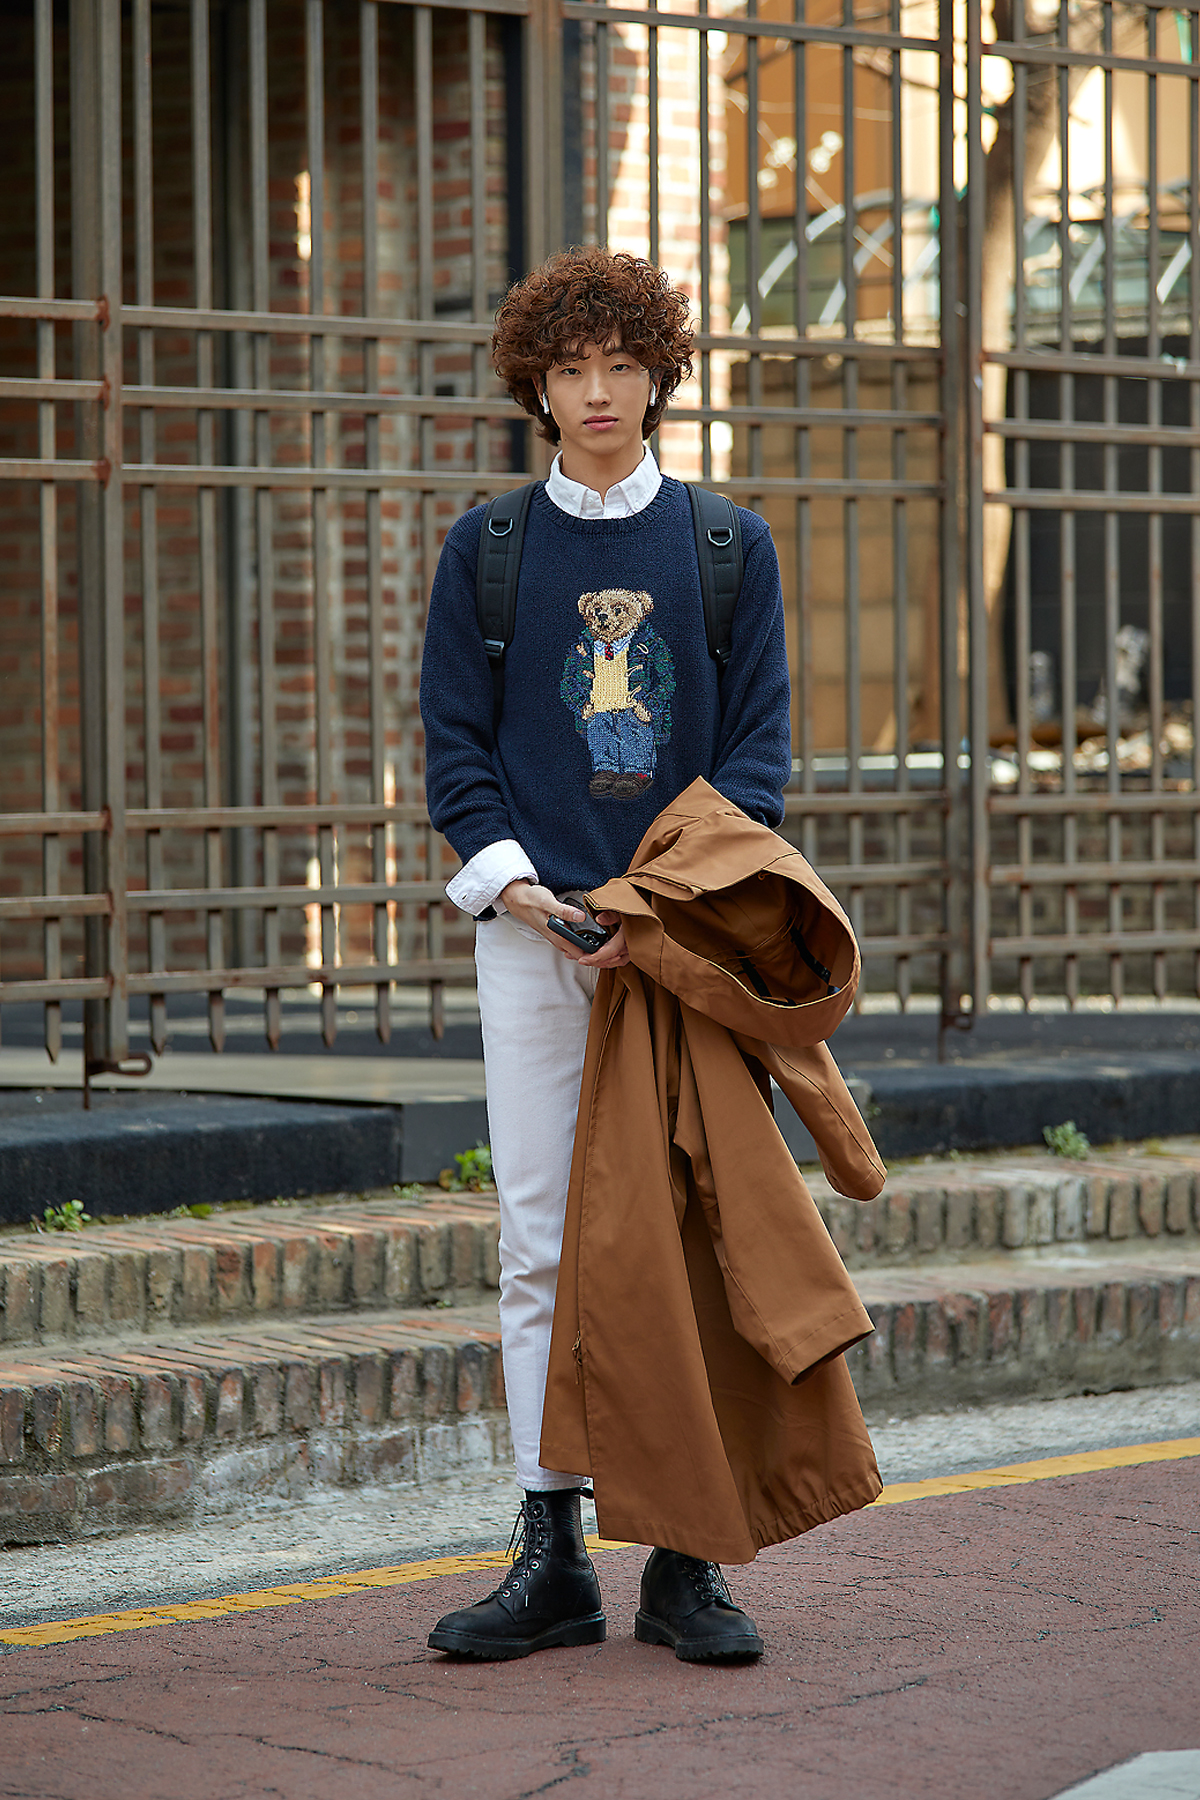 Streetfashion Men's Style in Seoul April 2020